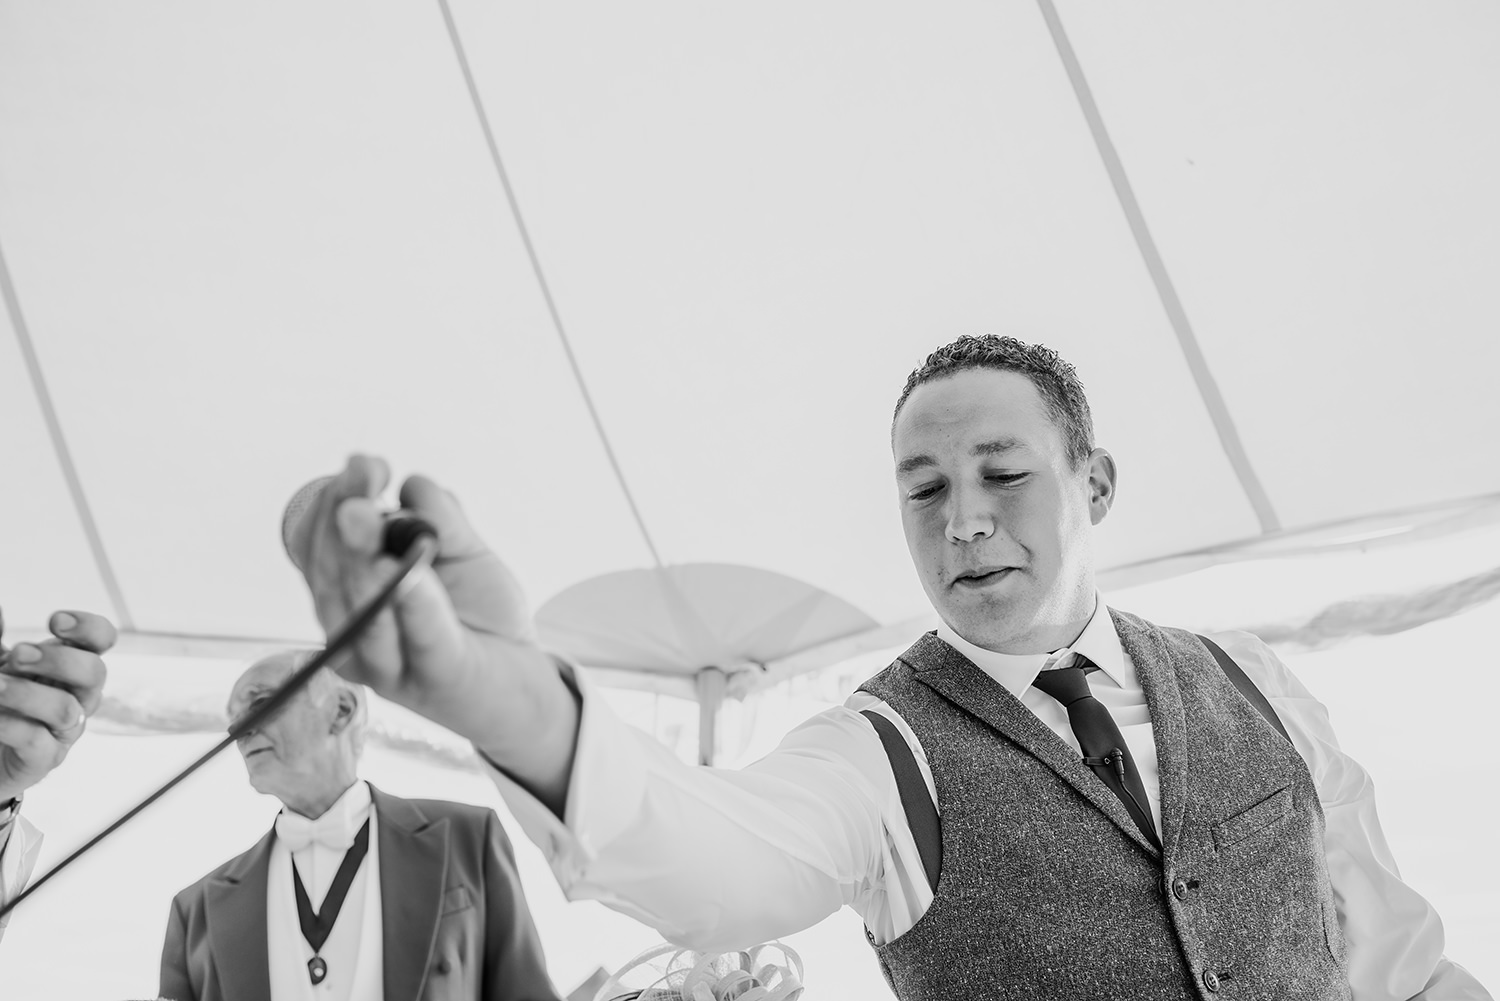 bw photo. Best man takes the microphone